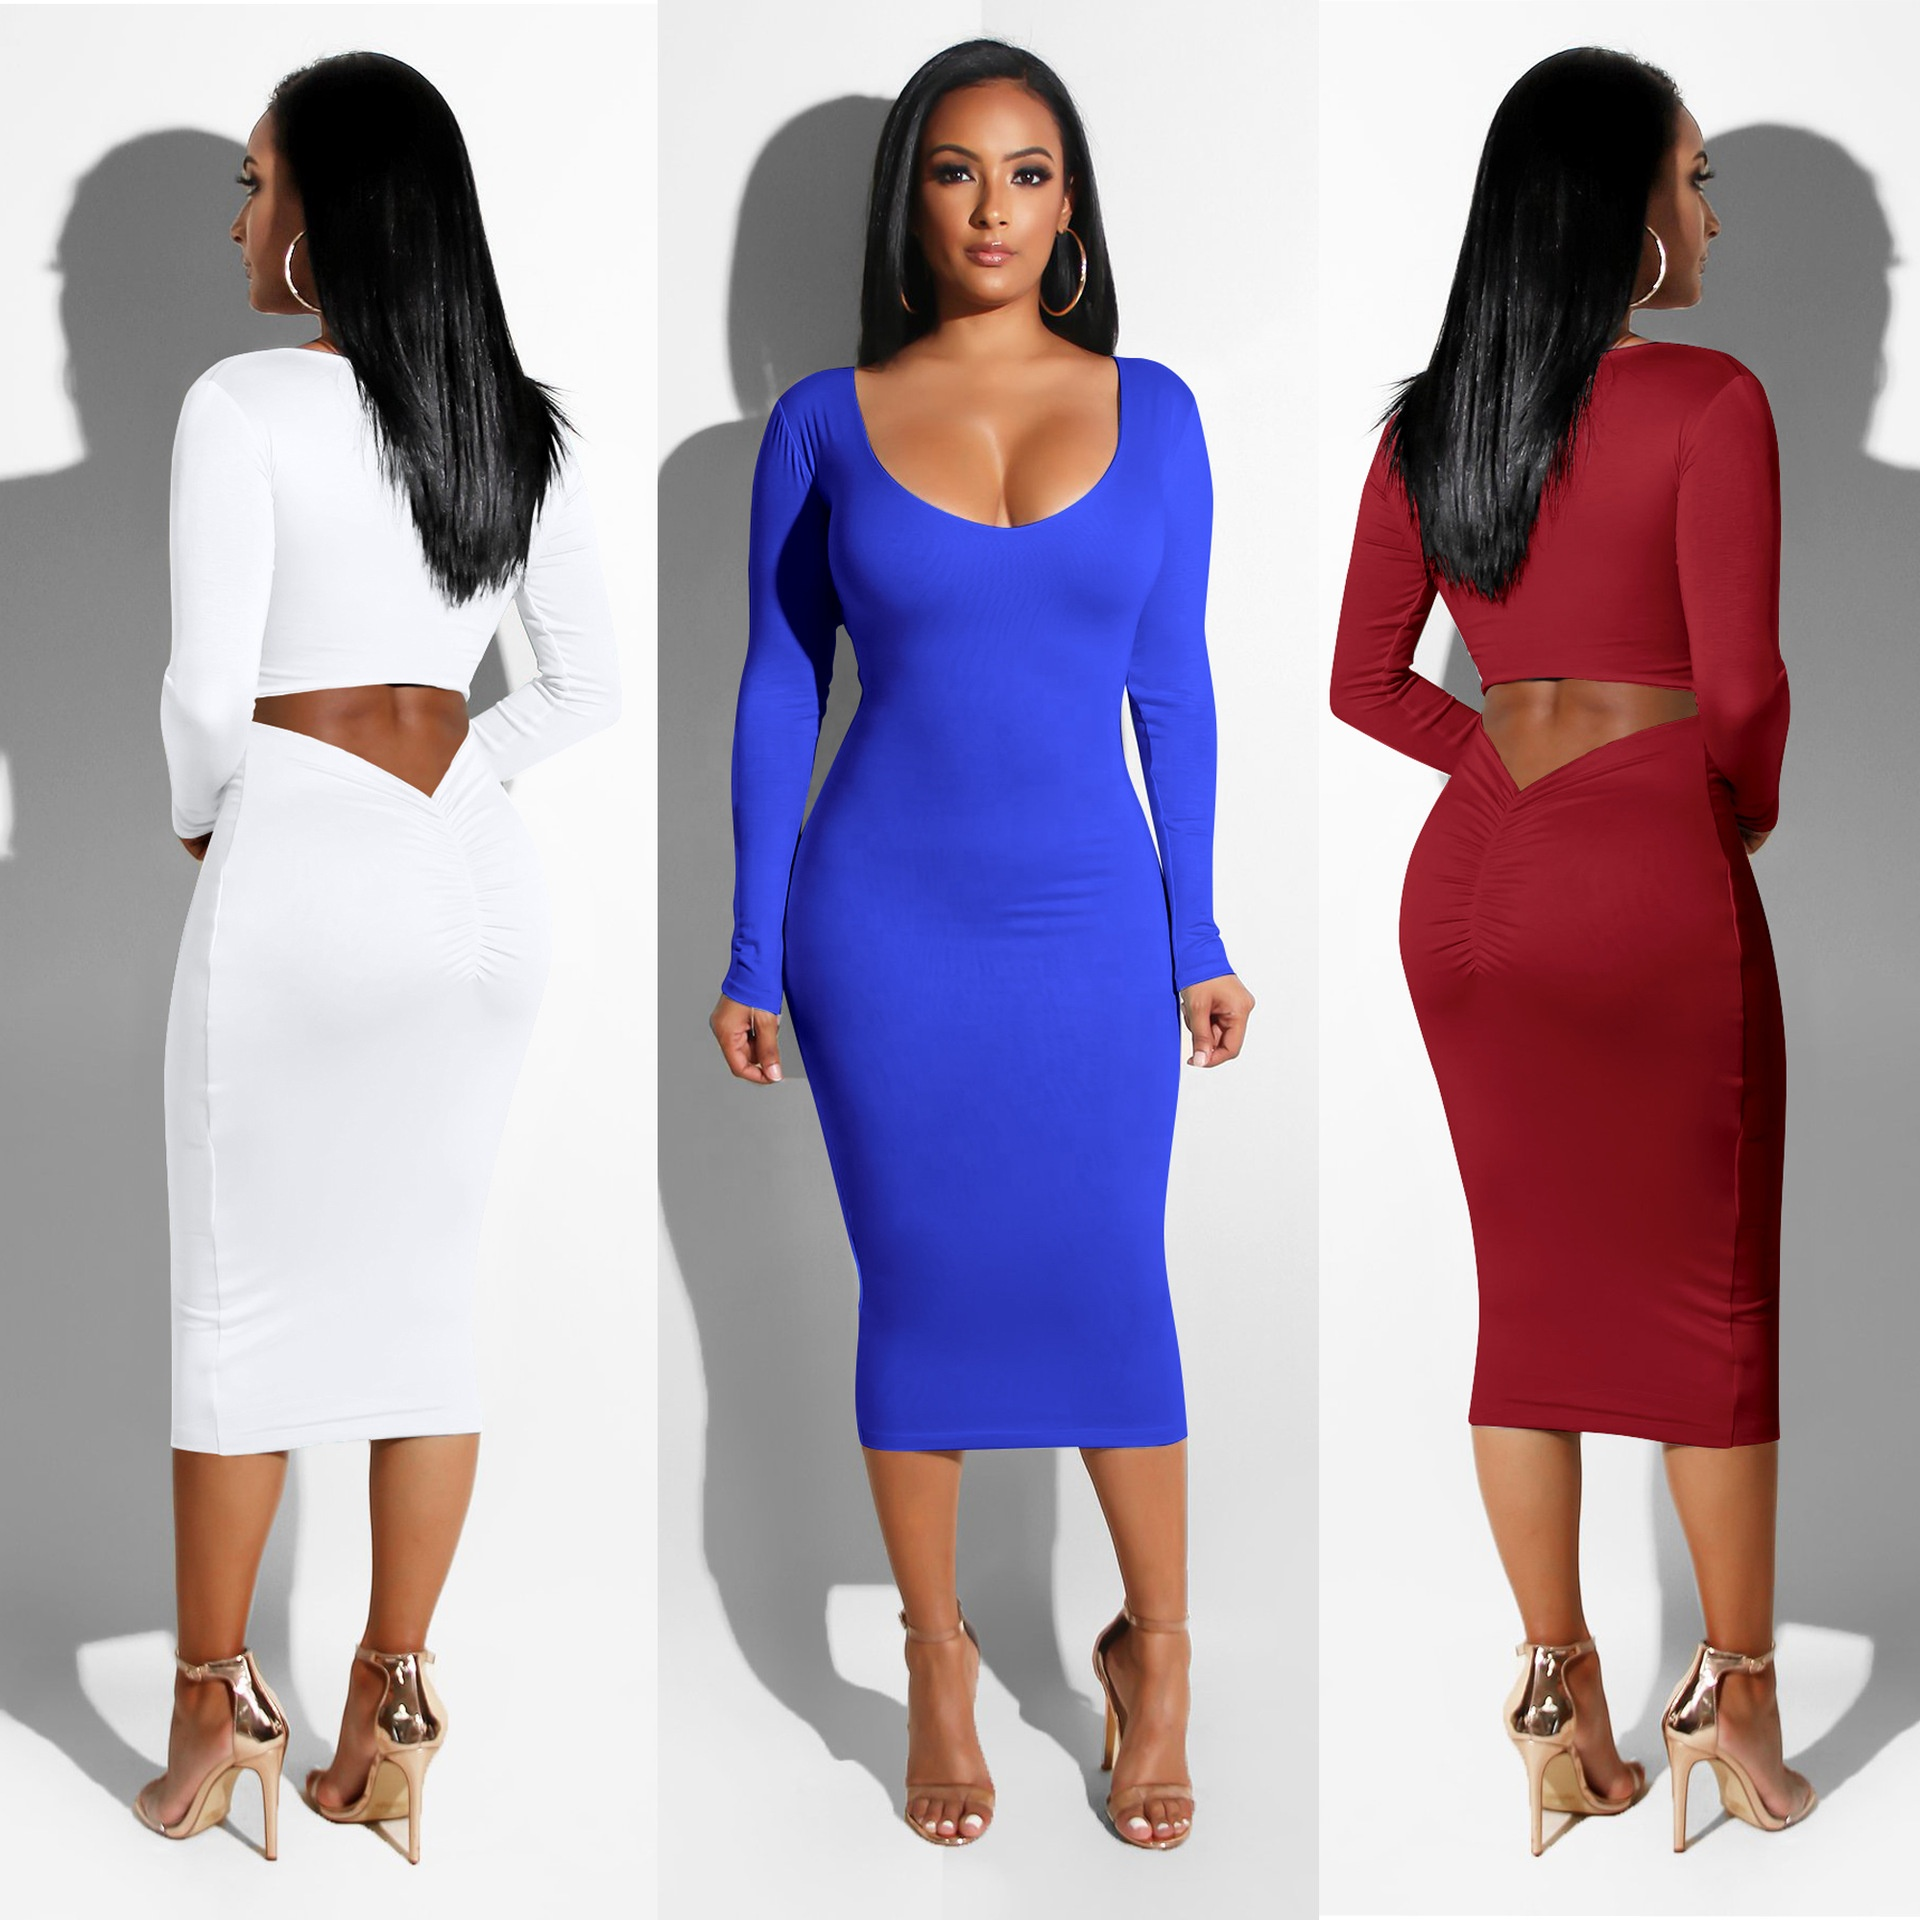 2018 Latest <strong>Dress</strong> Designs Sexy Fashion v-neck Party Women <strong>Dresses</strong>